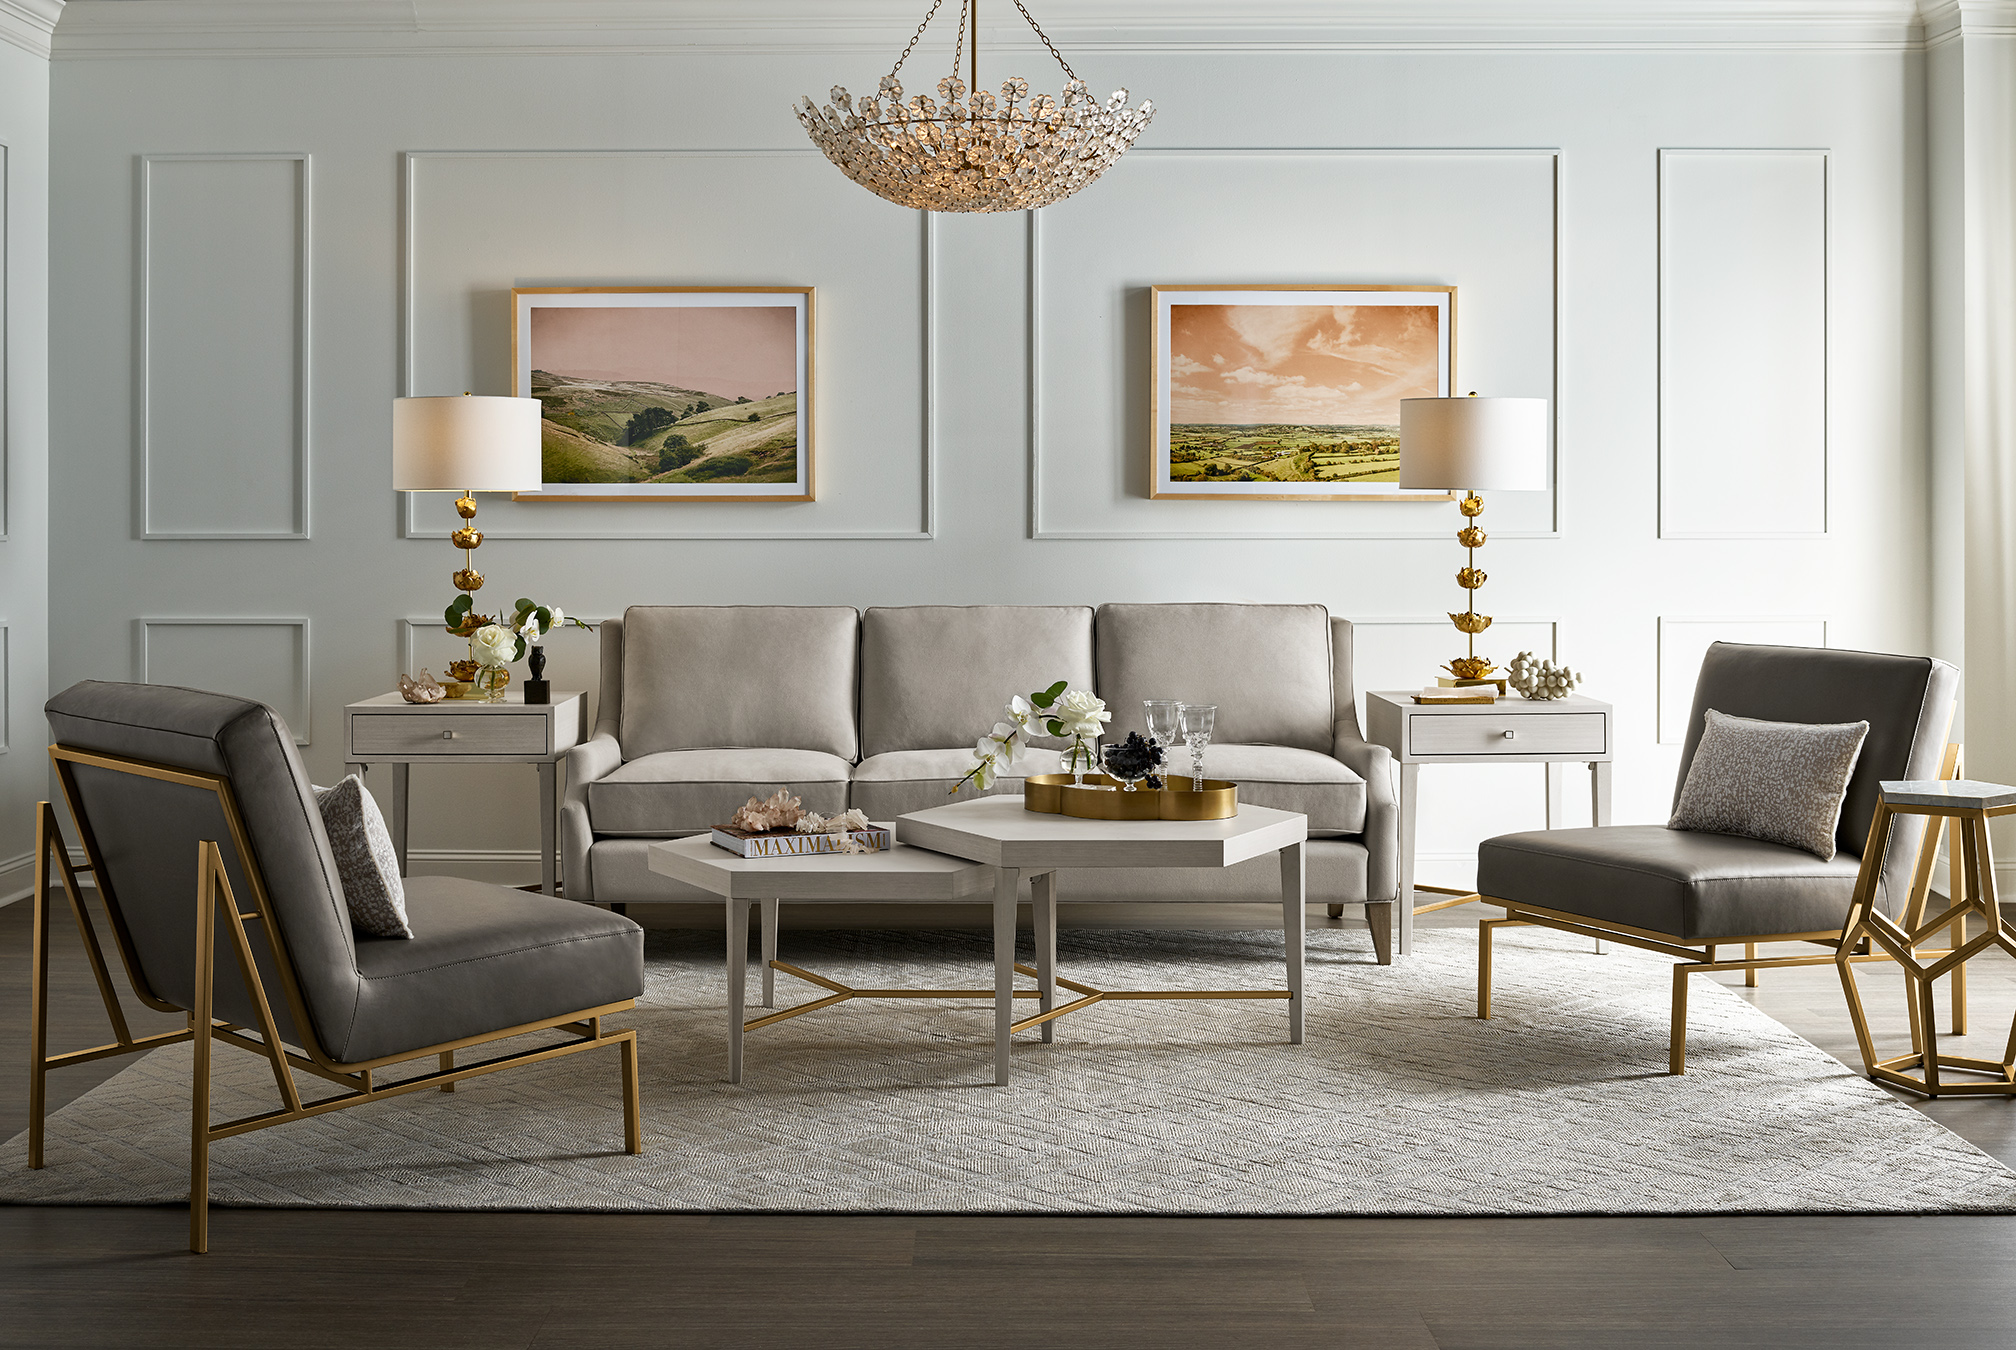 Image of living room furnishings from the Miranda Kerr Home collection